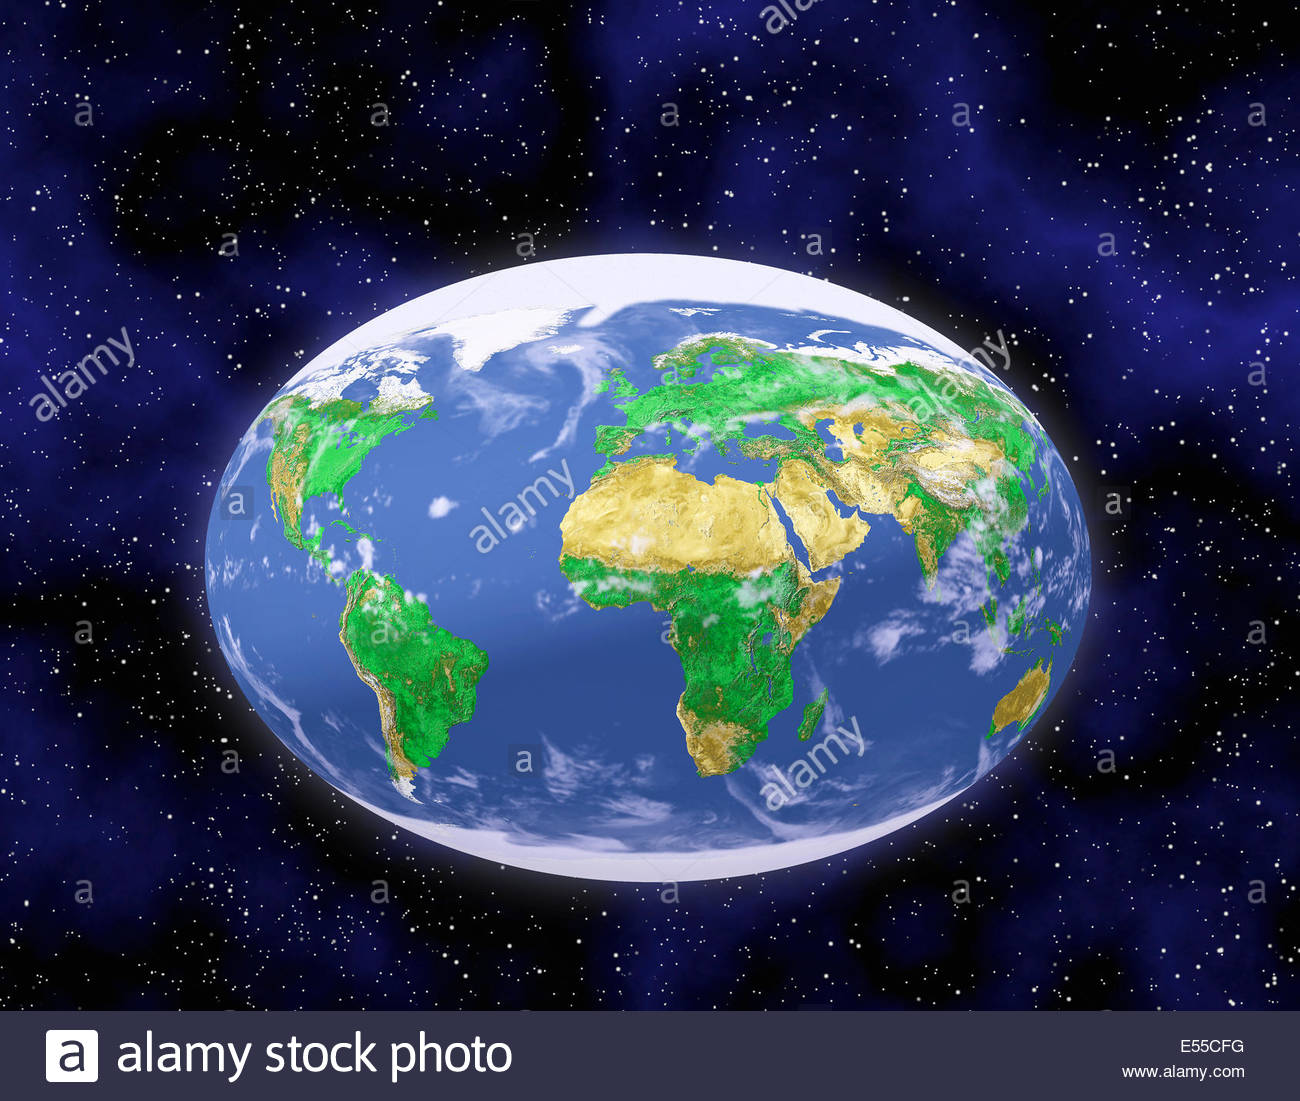 Earth map oval stock photos earth map oval stock images alamy illustration of oval earth showing all of continents in one view stock image gumiabroncs Image collections